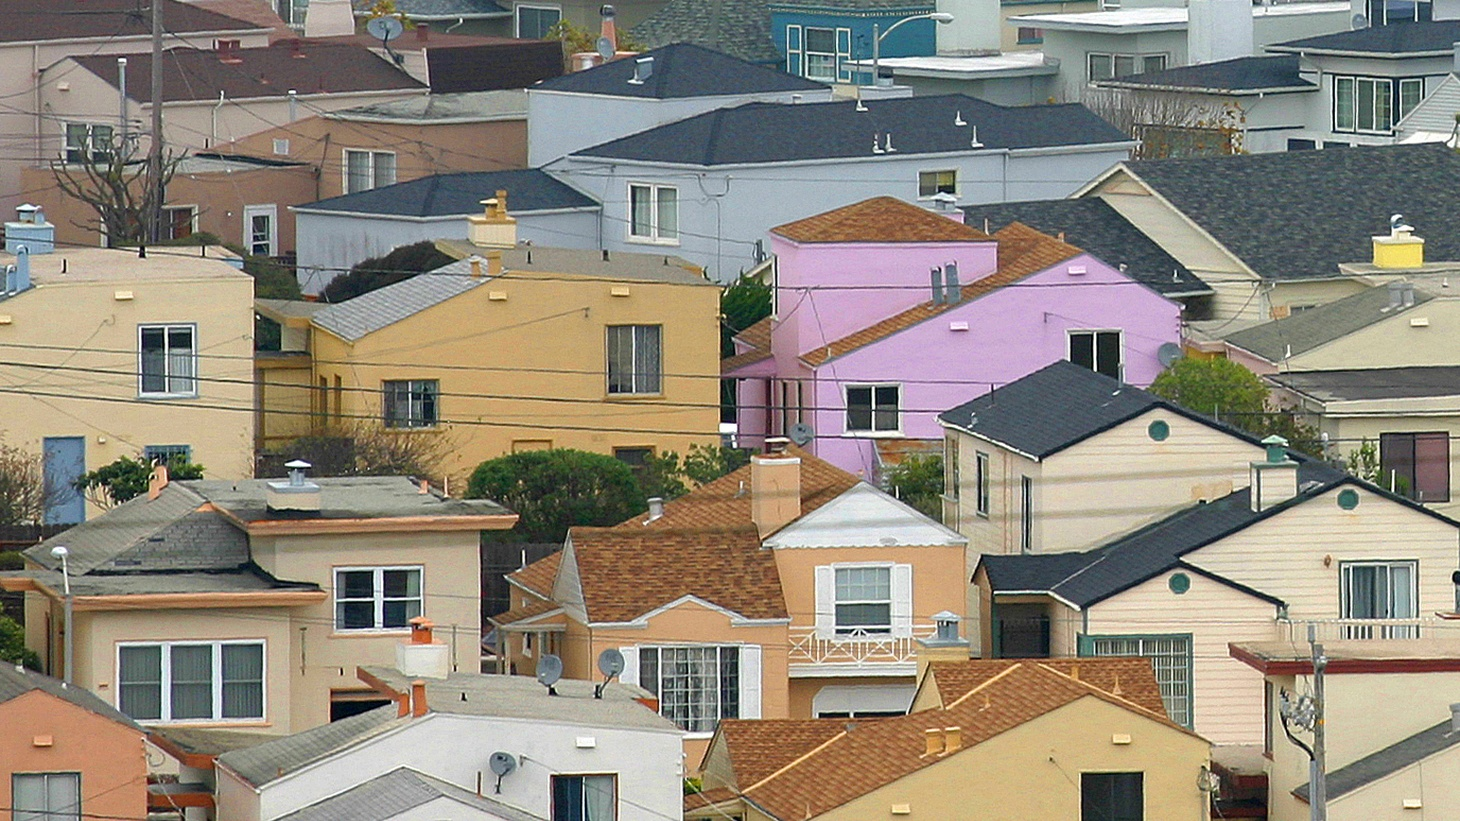 News today from the Census Bureau shows that the economic situation for millions of Americans got better last year: More than three million people escaped poverty and median income is up more than 5 percent.